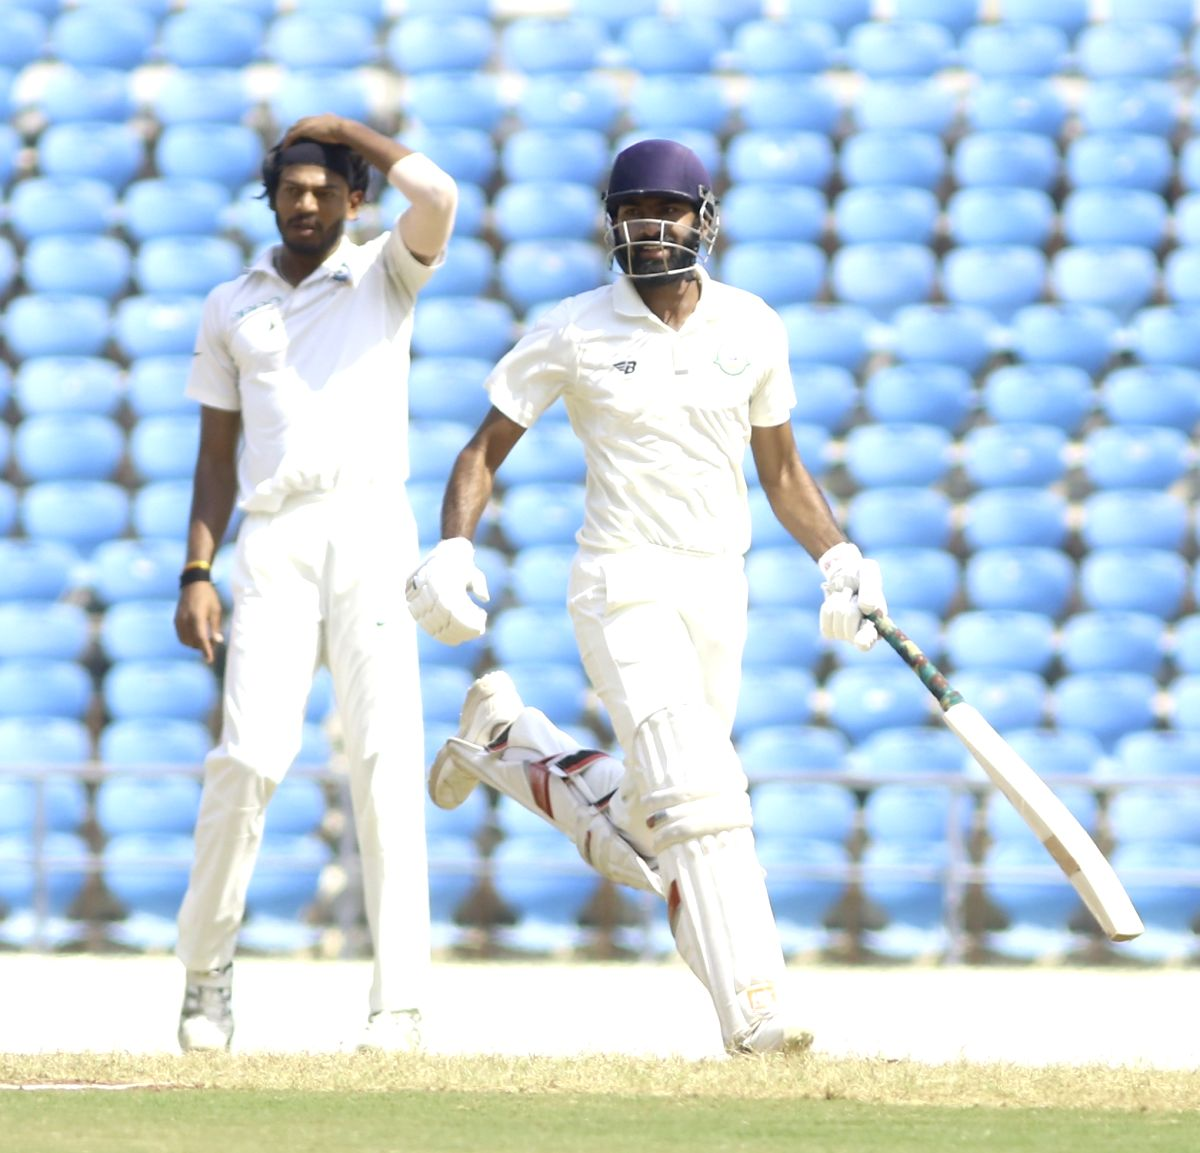 Nagpur: Vidarbha batsman Akshay Karnewar in action on the Third Day of Irani Cup match between Rest of India and Vidarbha at Vidarbha Cricket Association Stadium, in Jamtha, Nagpur on Feb 14, 2019.